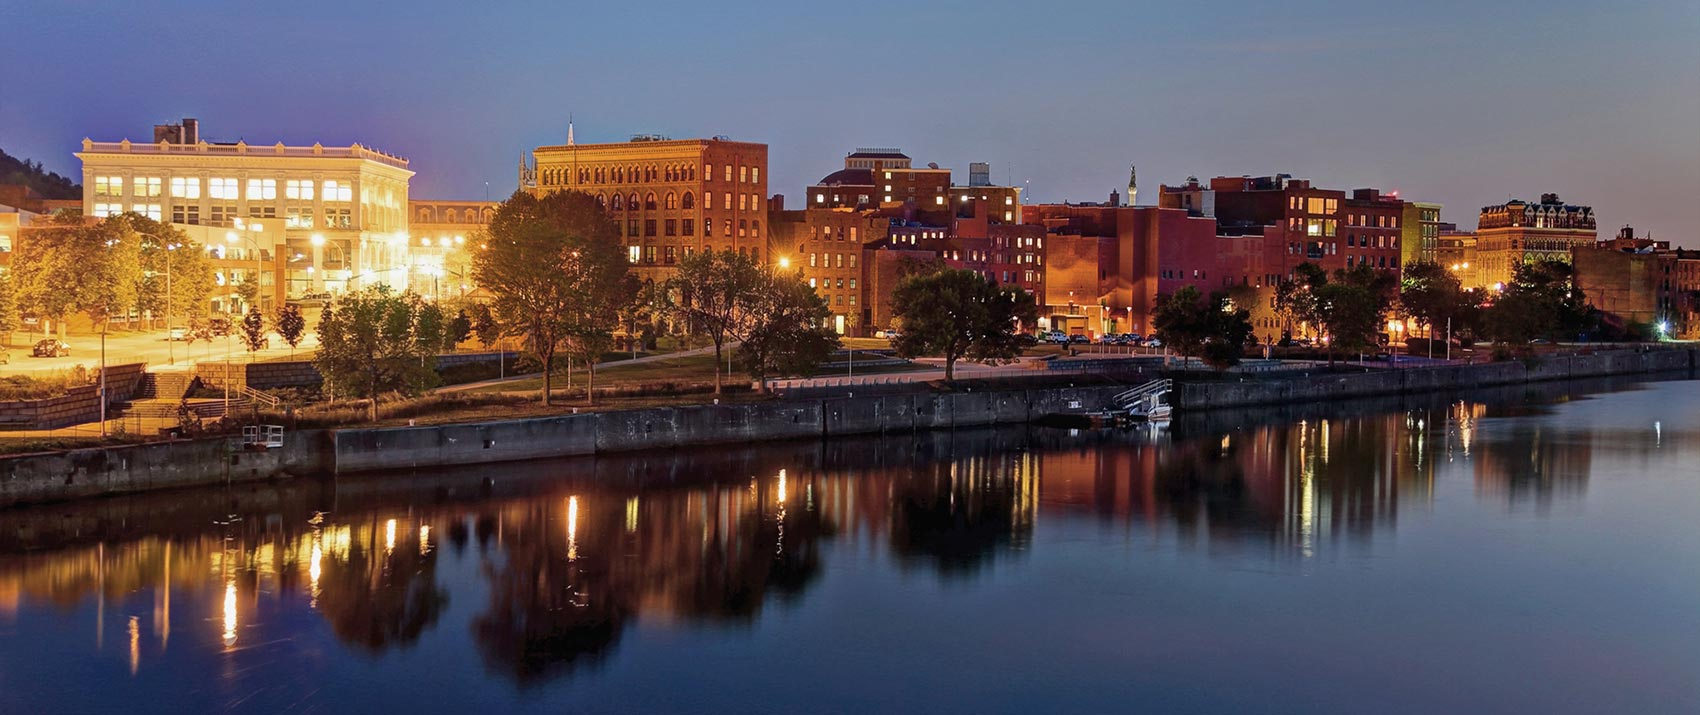 Hudson River and Downtown Troy NY at dusk